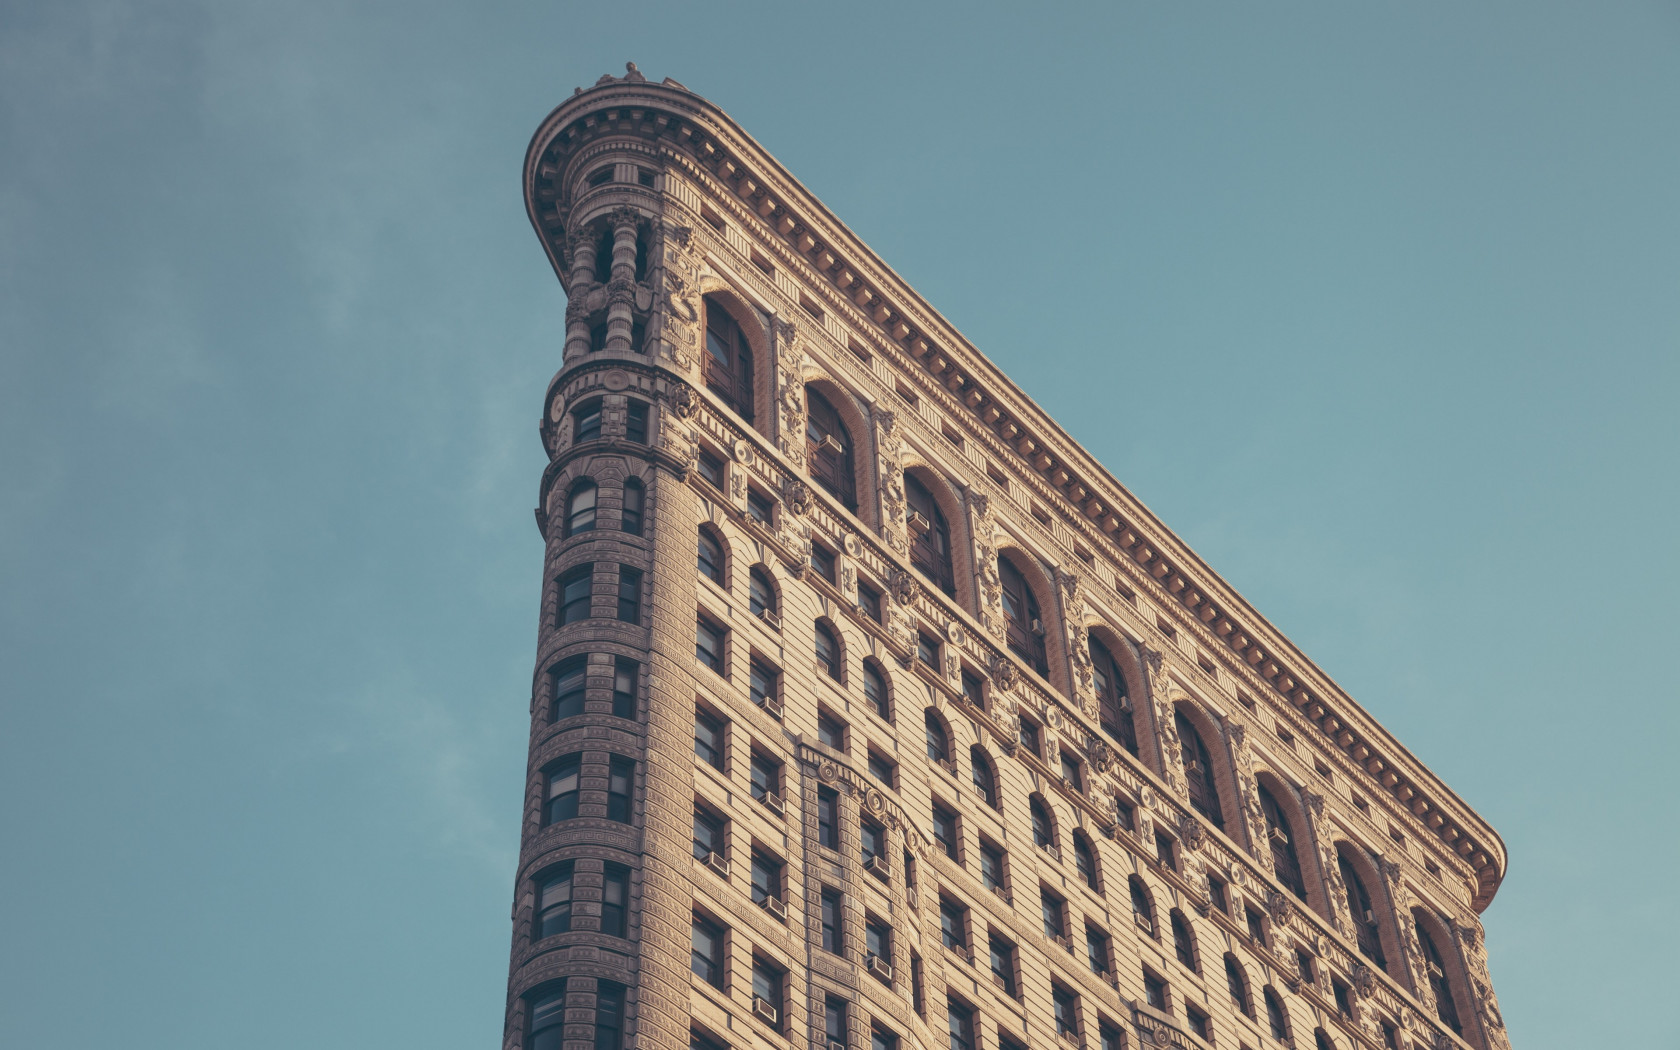 Flatiron building in New York wallpaper 1680x1050